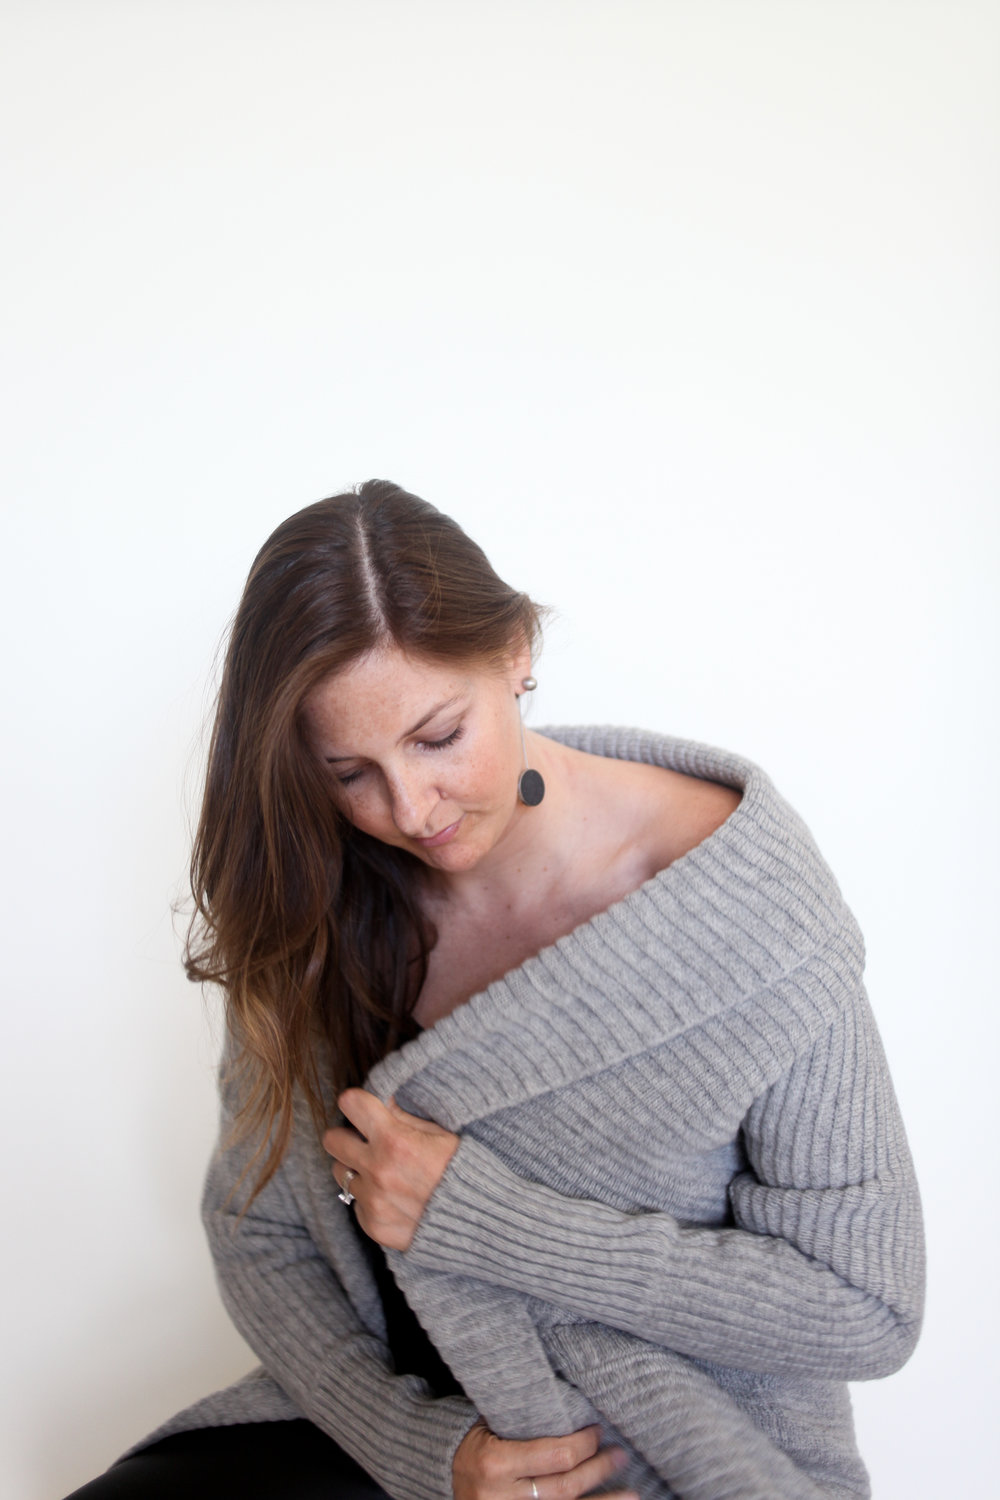 KONZUK jewelry & Celtic & Co. sweater on The Style Crusader